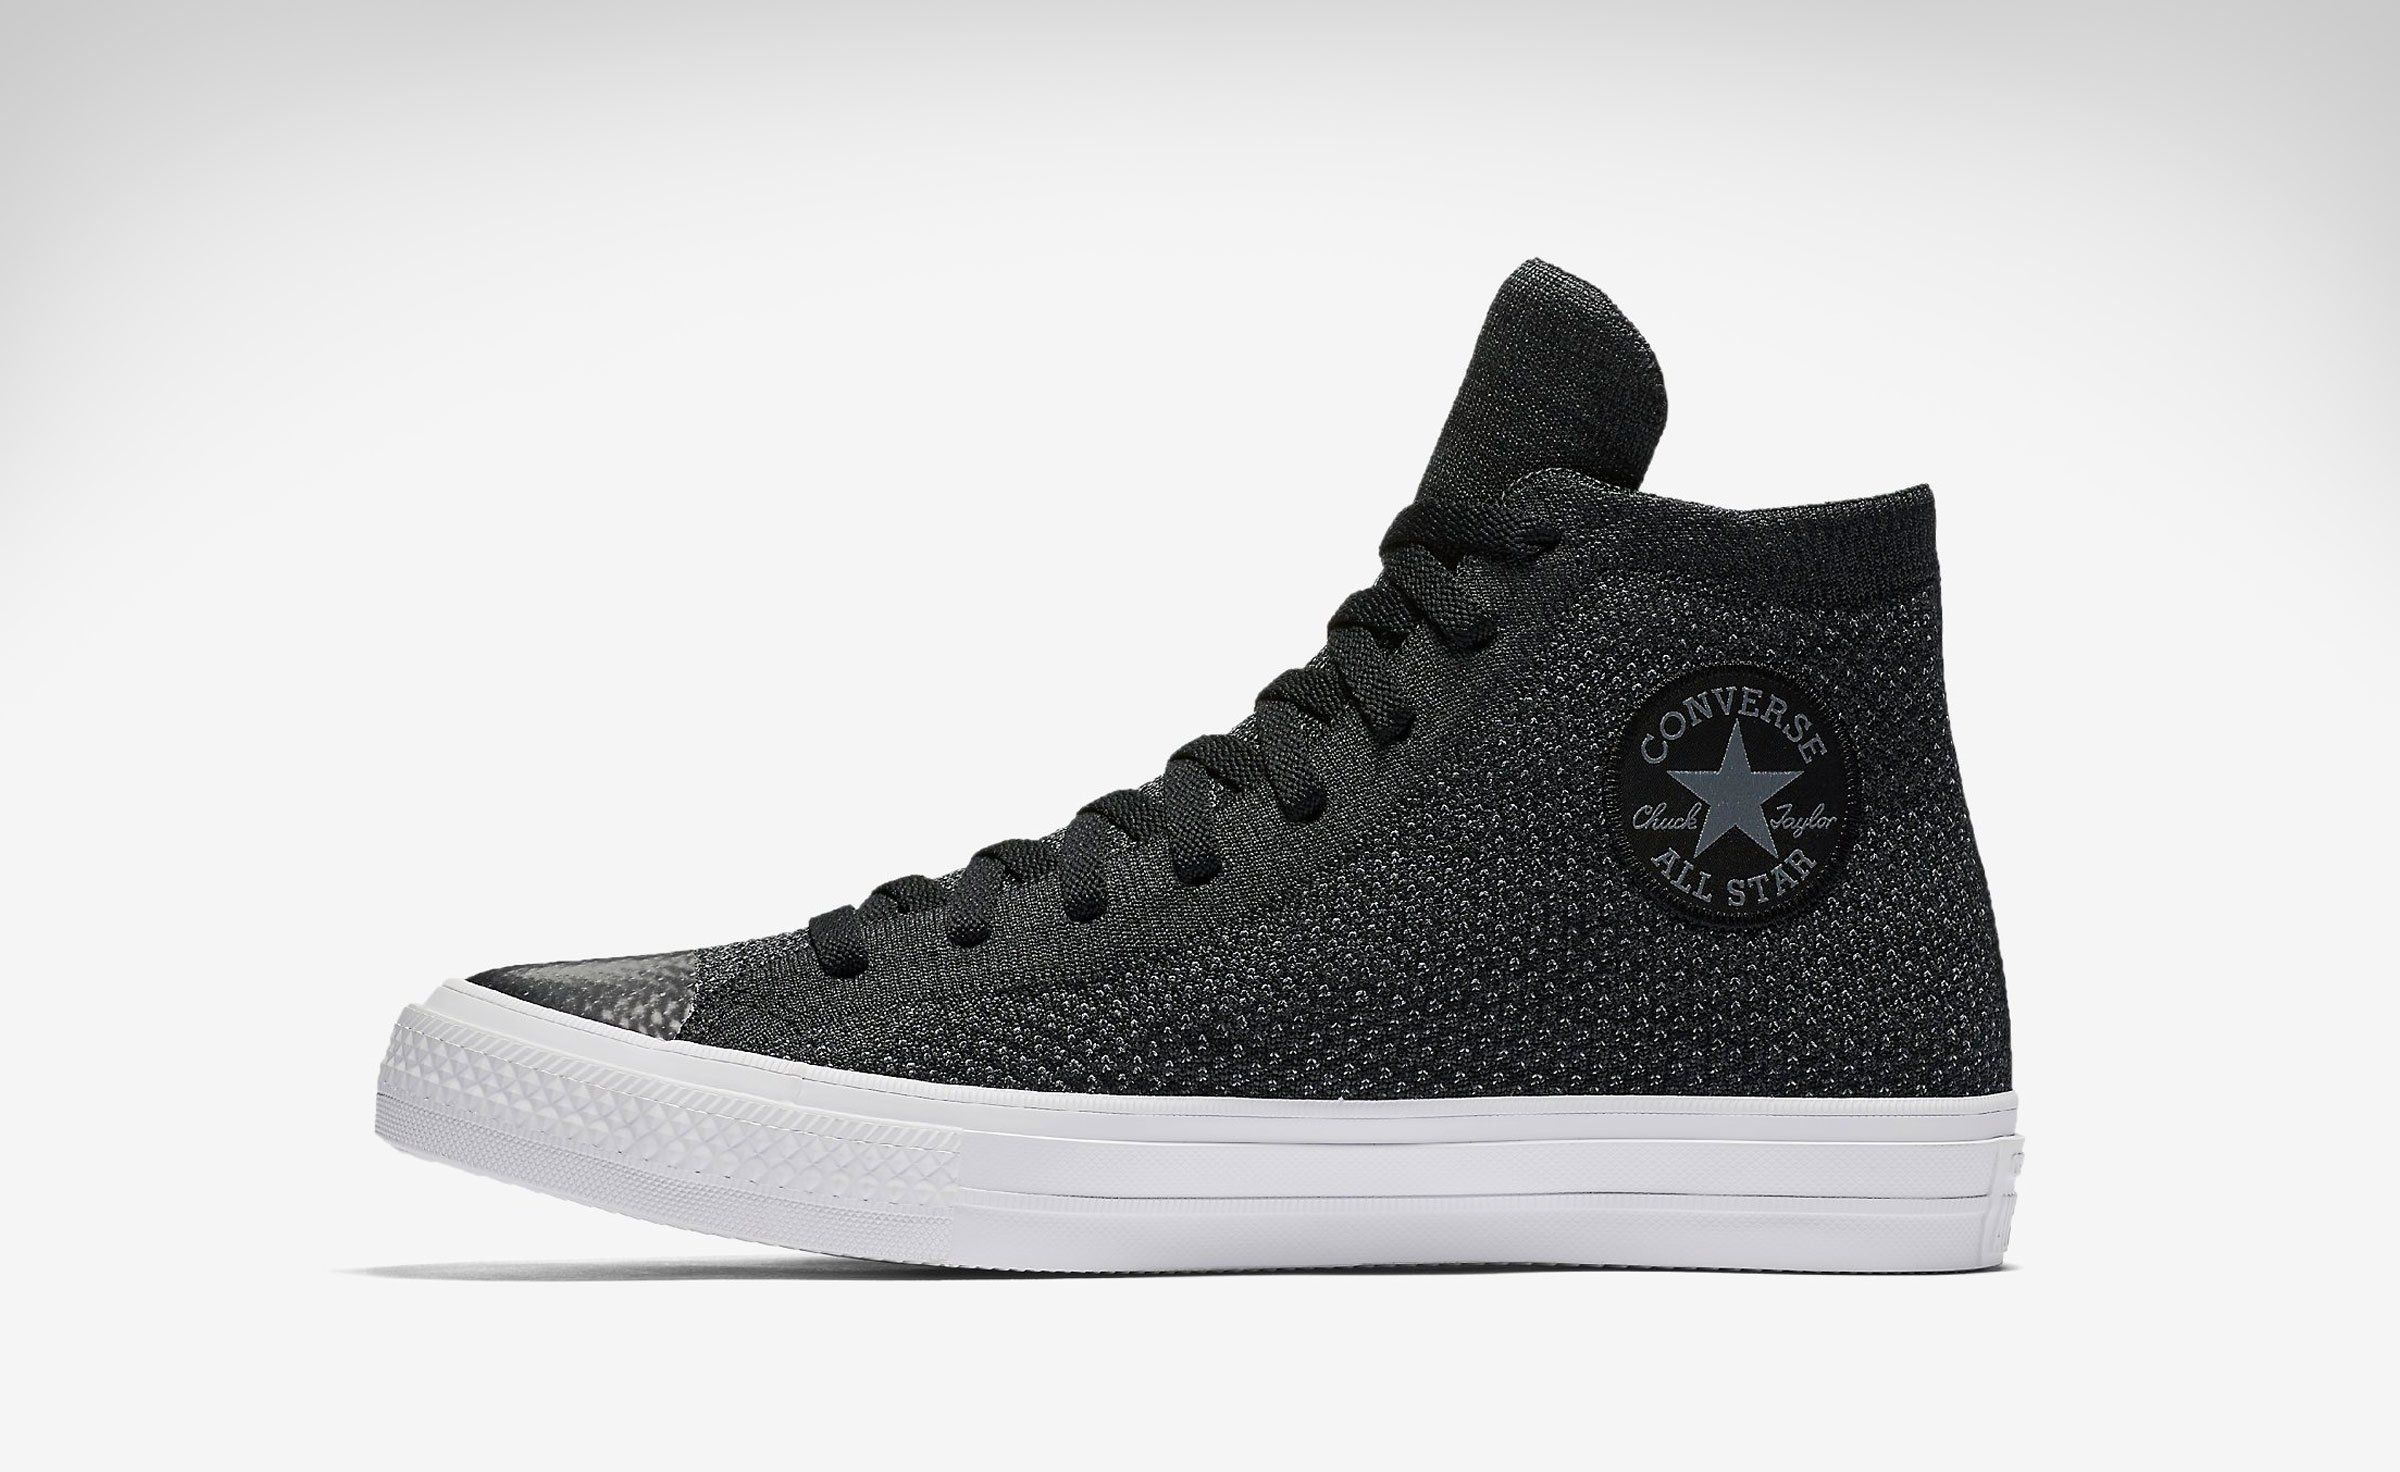 Converse Lunarlon Insole For Sale Converse Chuck Taylor All Star With Nike Flyknit Chuck Taylors